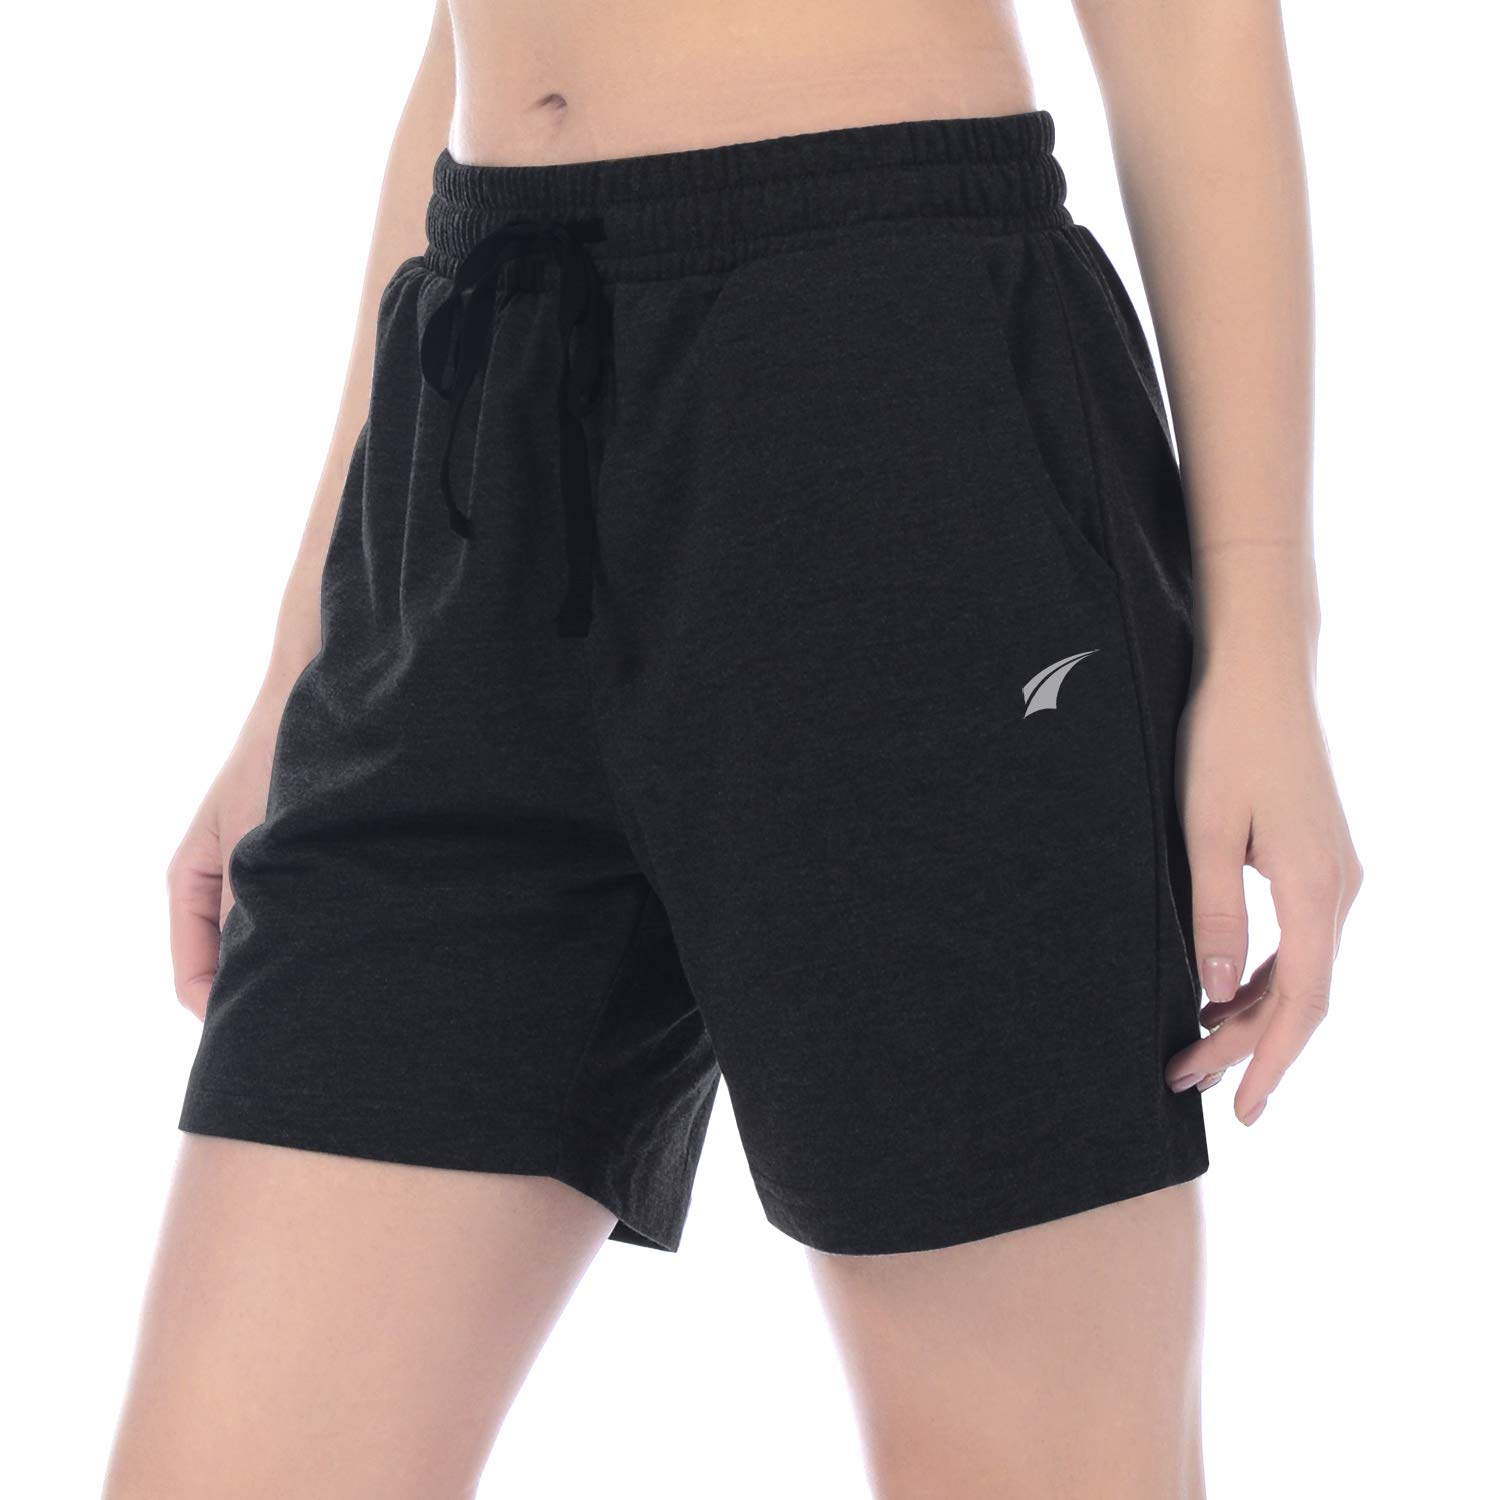 Amazon.com   EZRUN Women s Active Workout Jogger Shorts Lounge Activewear  Yoga Shorts with Pockets   Clothing c0a609535310